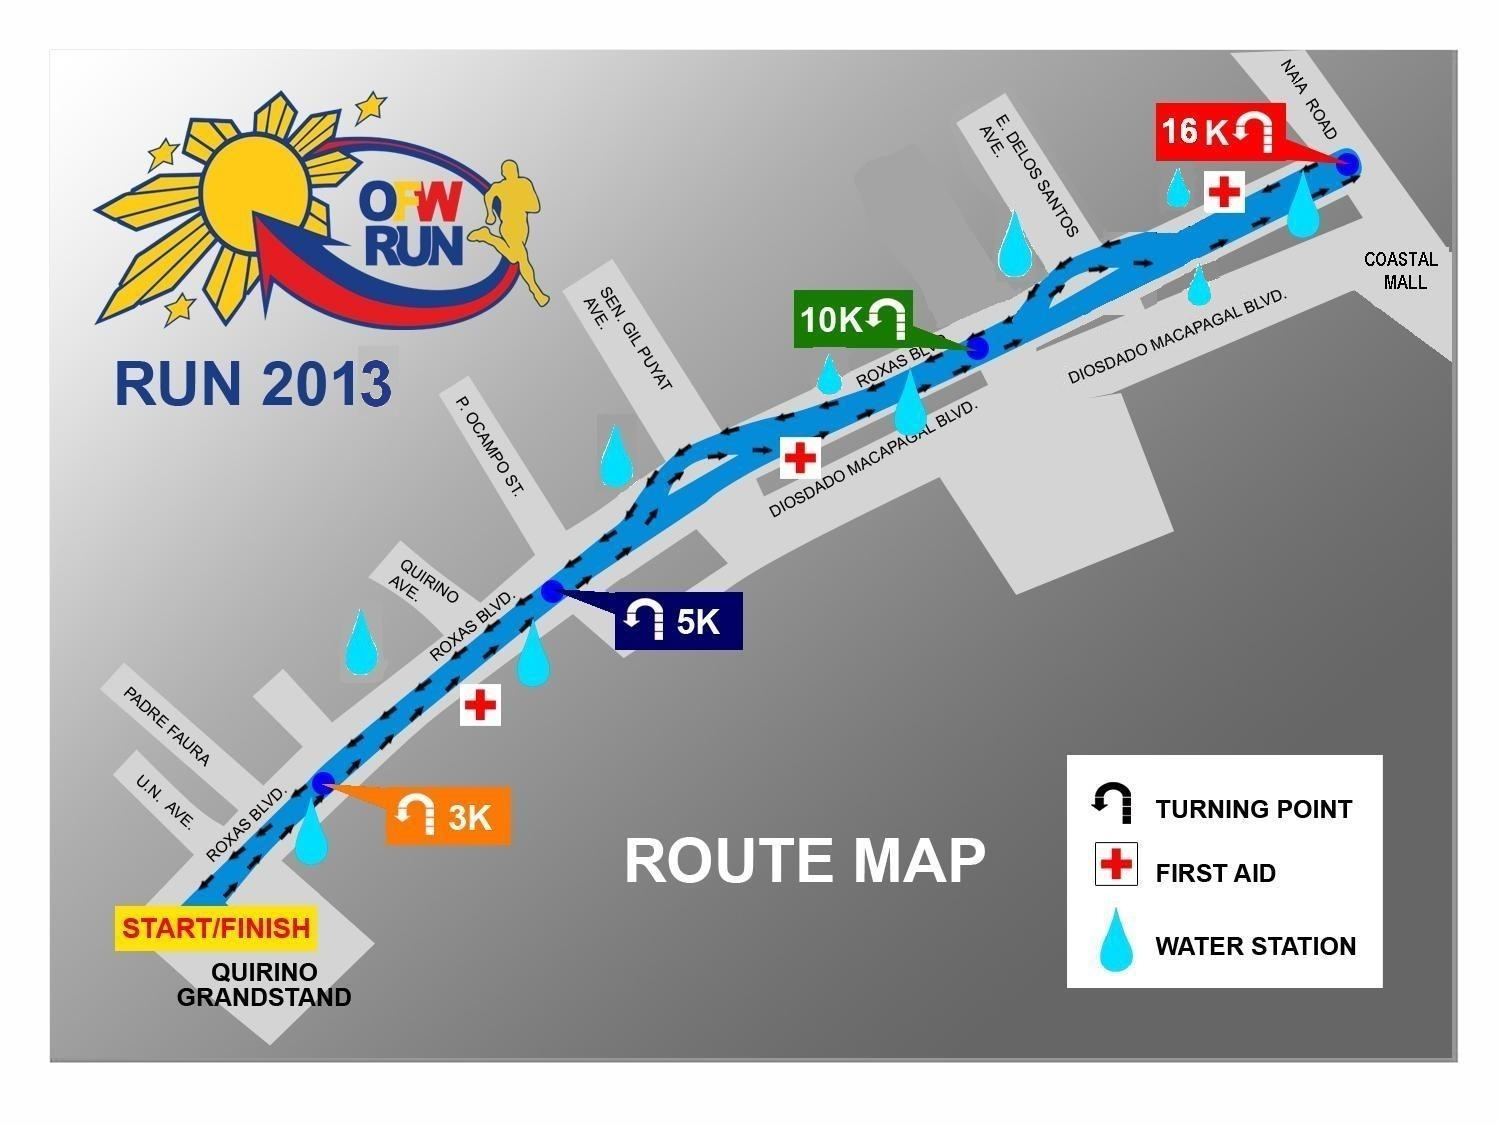 ofw-run-2013-route-map